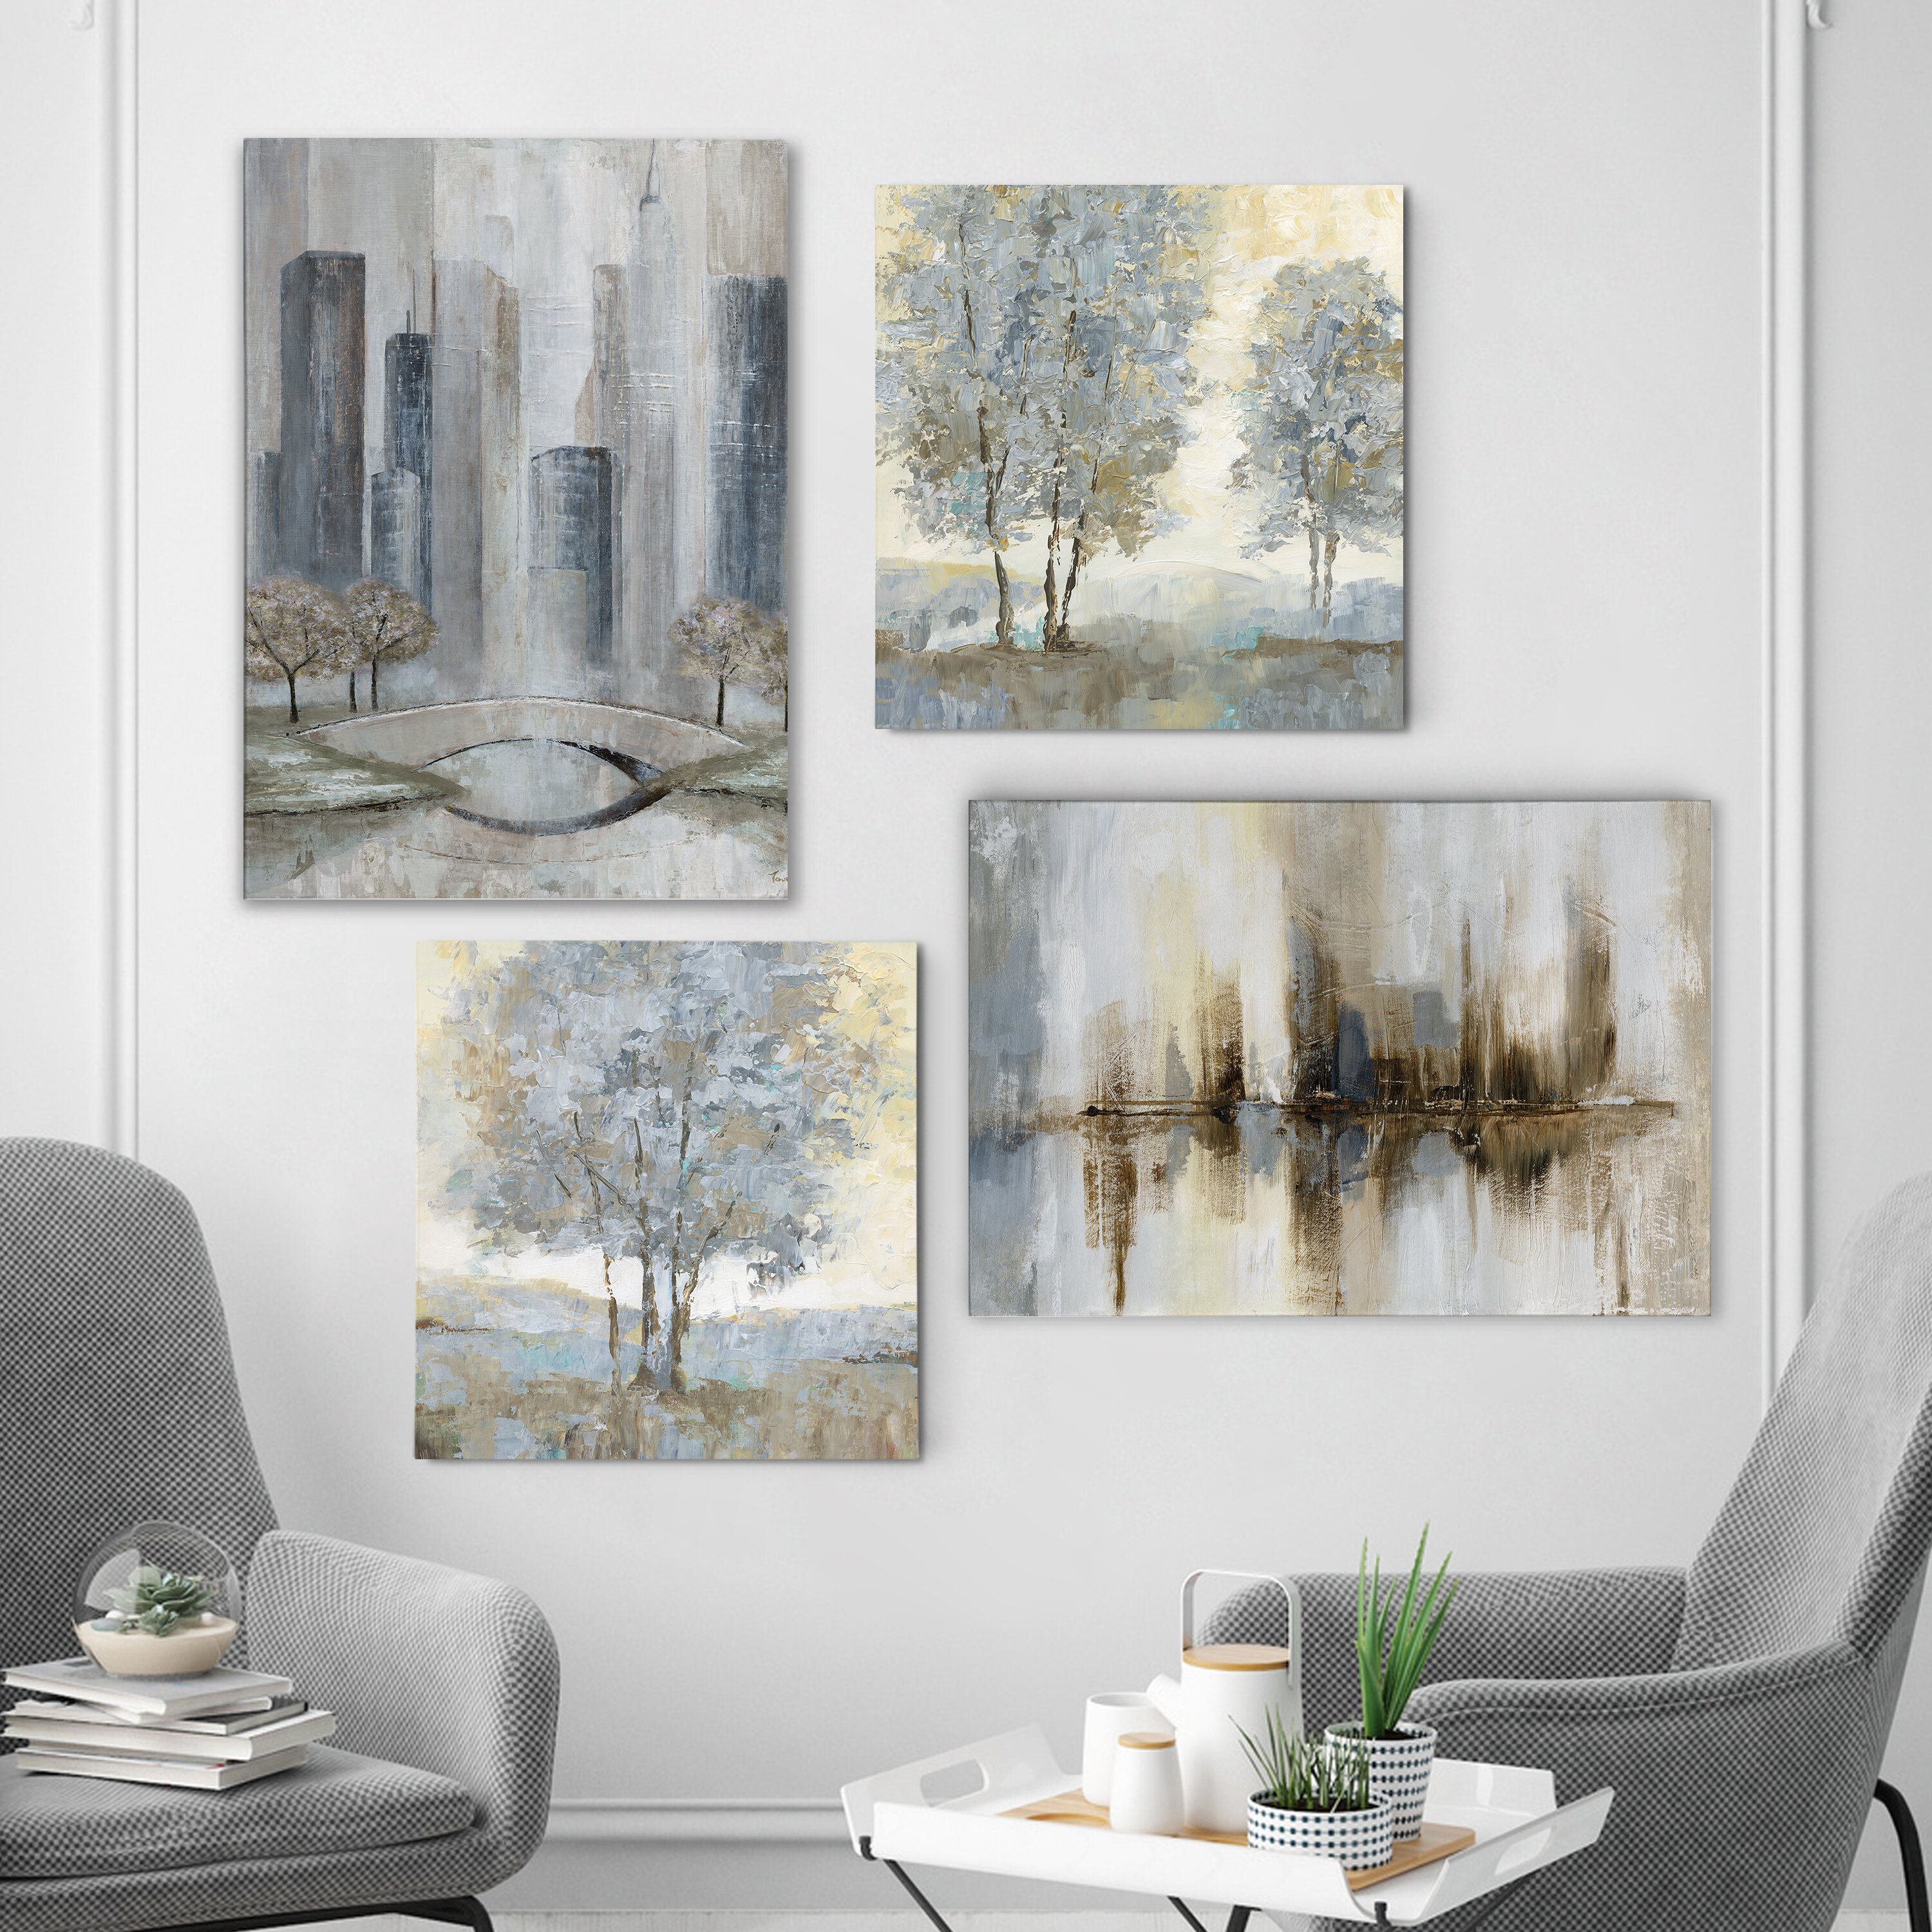 'touch Of Modern Grays' 4 Piece Painting Print Set On Canvas Intended For 4 Piece Wall Decor Sets By Charlton Home (View 11 of 30)